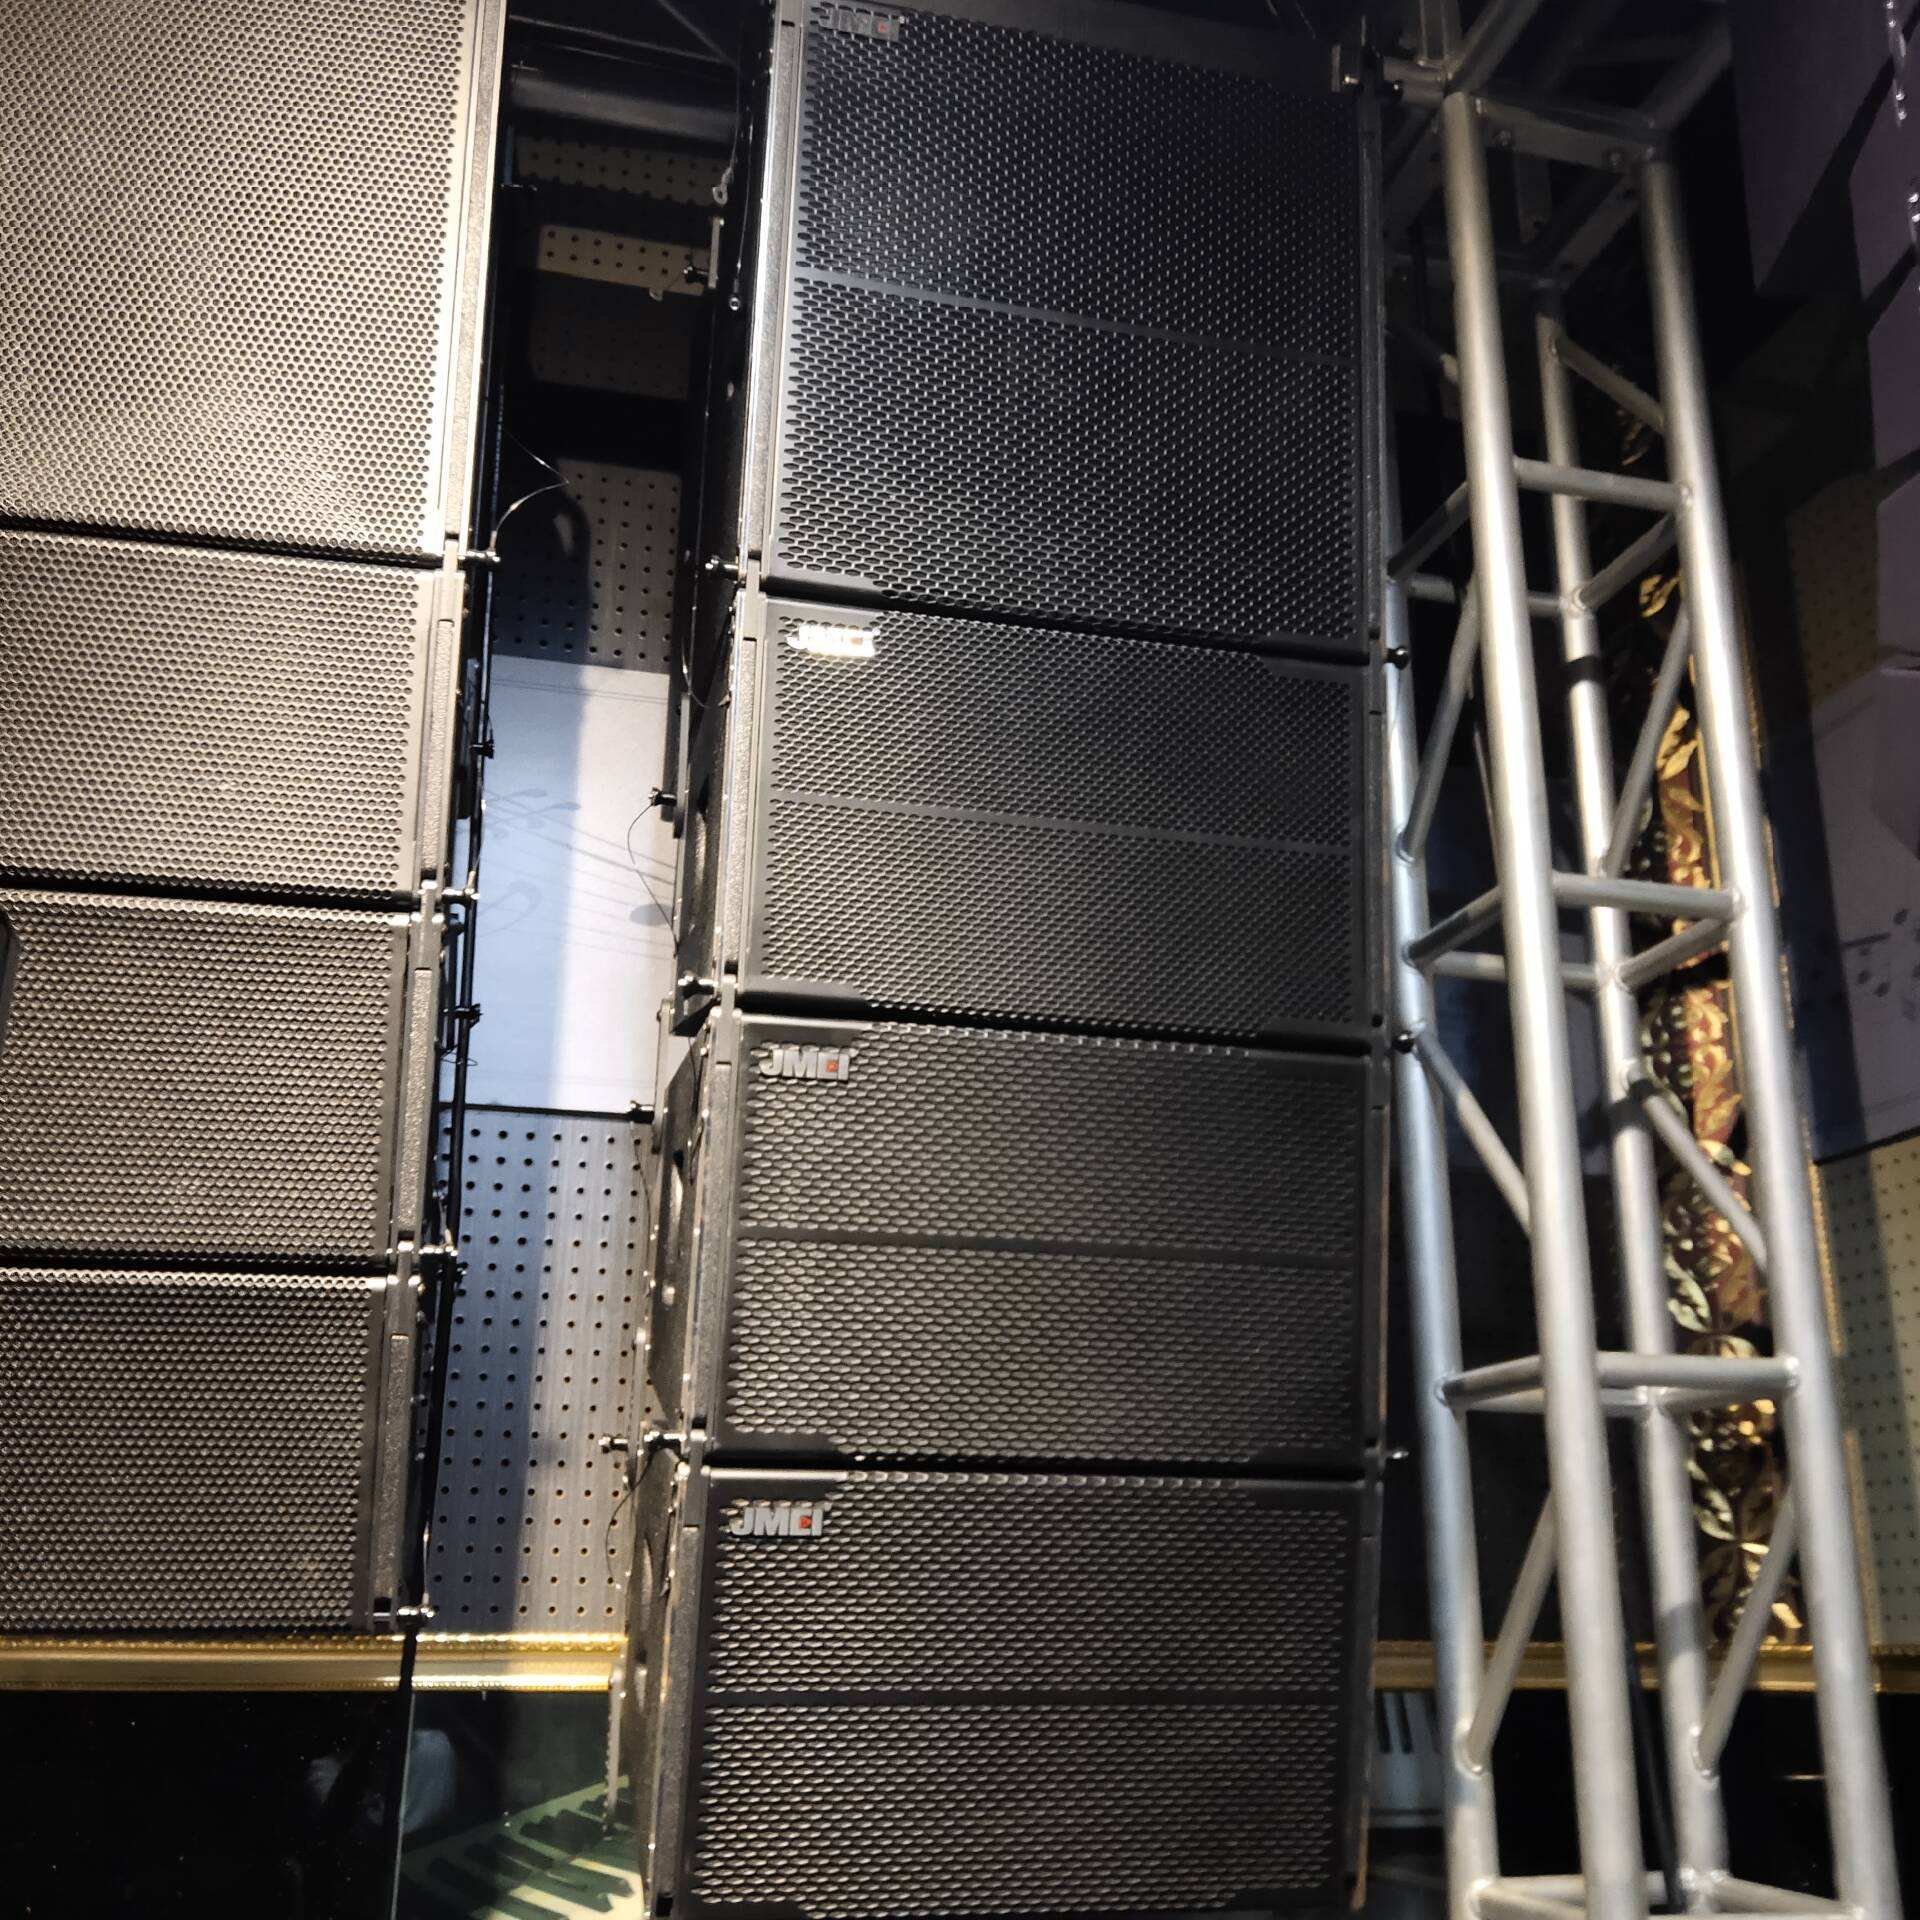 2019 Outdoor Line Array Sound System For 50000 Audiences Public Address